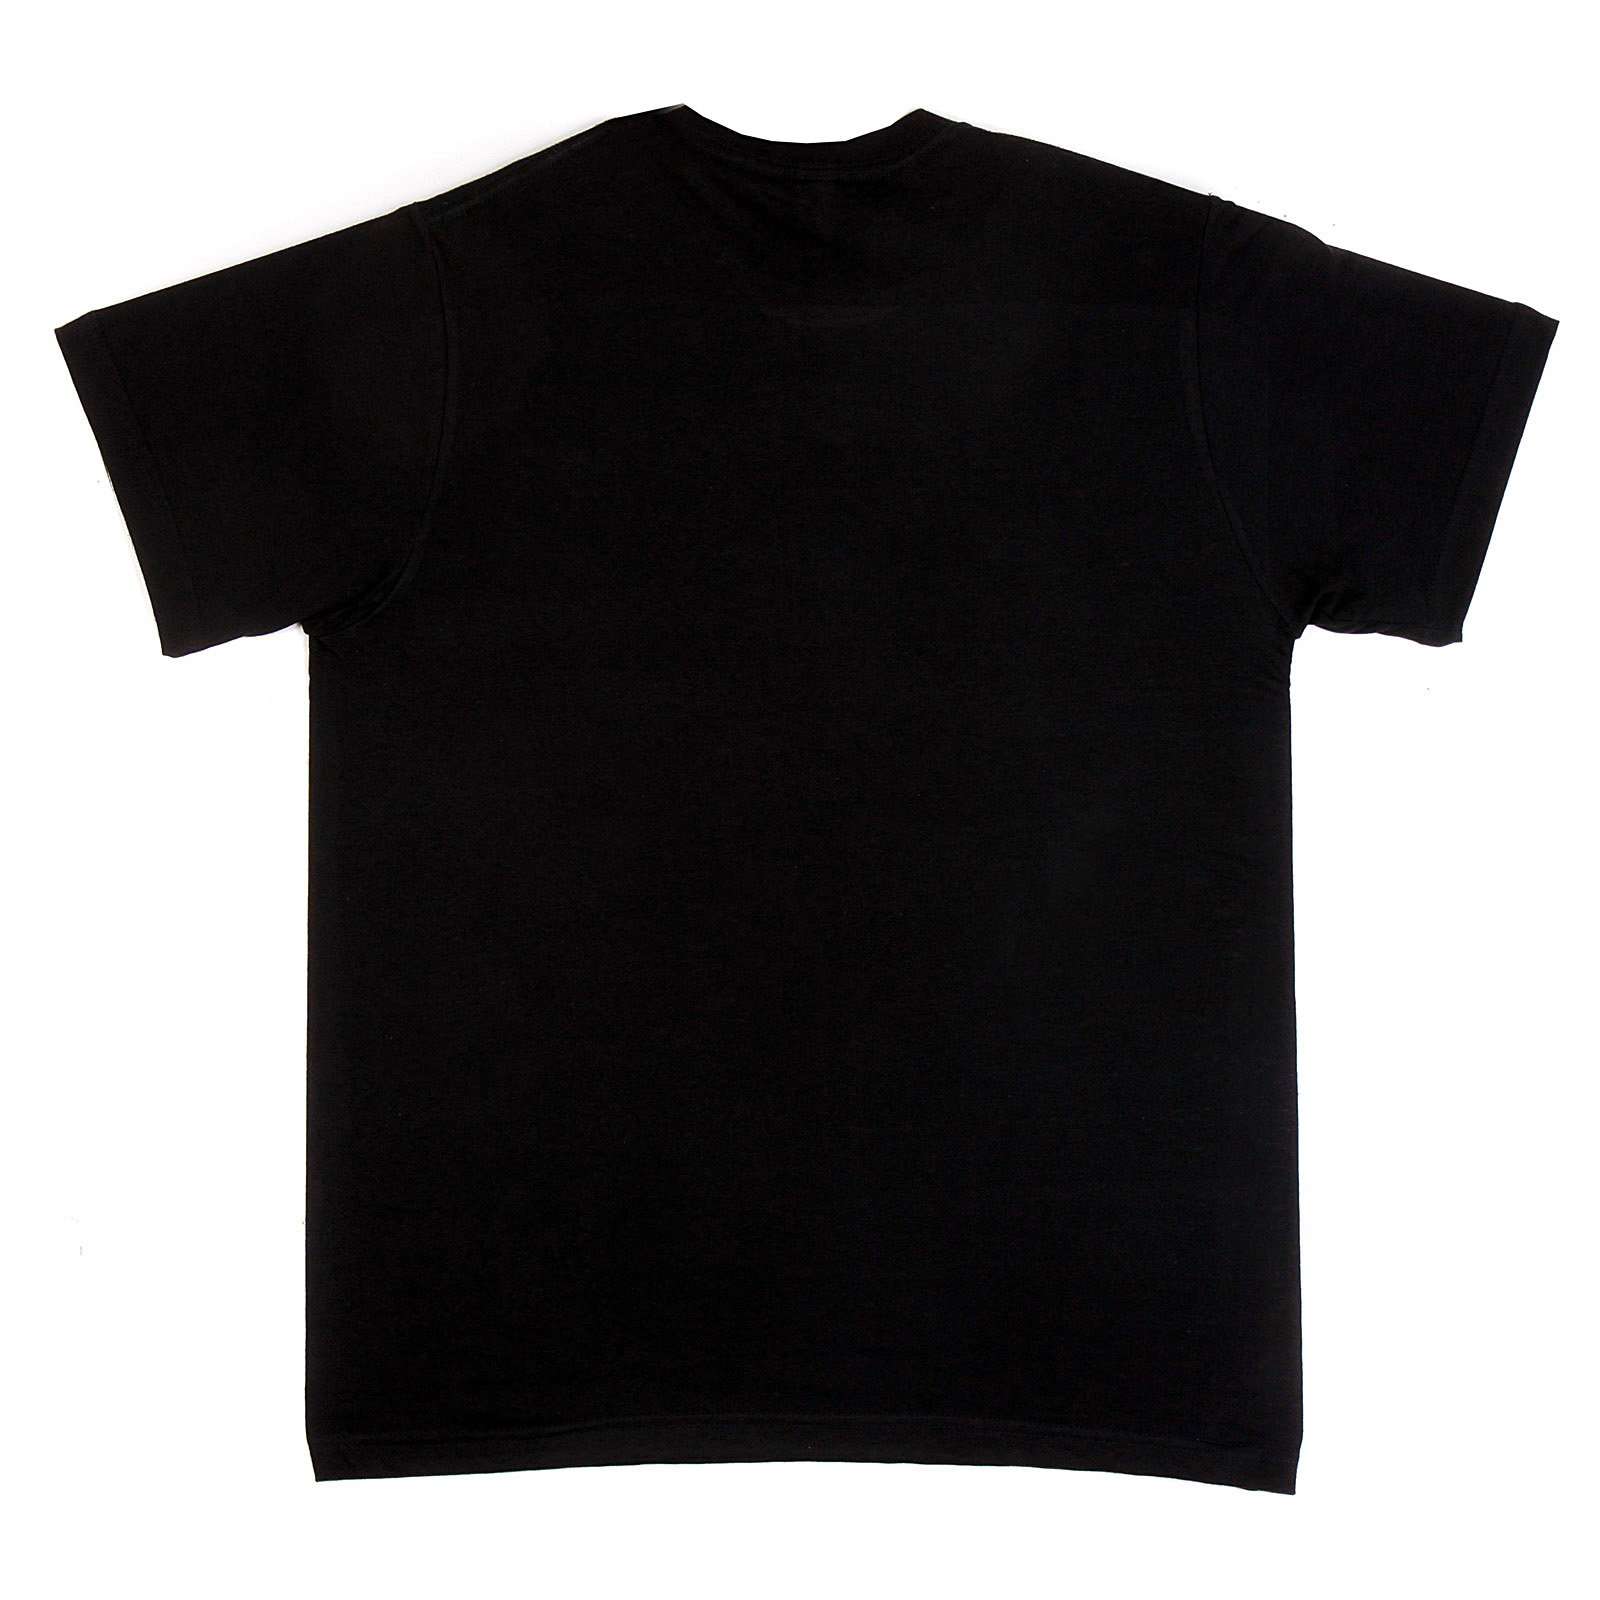 Hashgraph Blockchain Bitcoin Tech Black T-Shirt #2 Comfortable, casual and loose fitting, our heavyweight dark color t-shirt will quickly become one of your favorites. Made from % cotton, it .